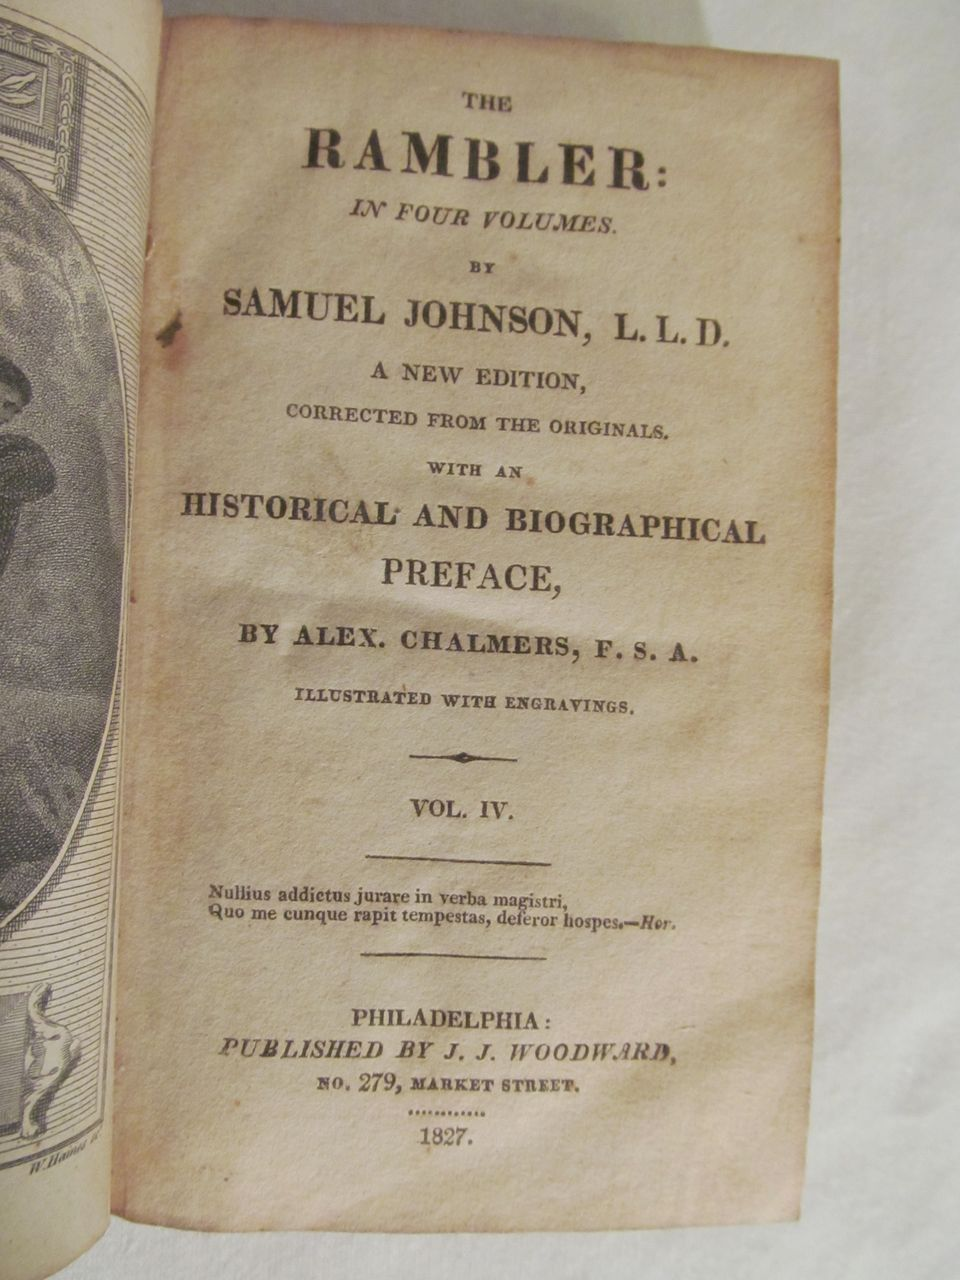 """samuel johnson essays rambler About selected essays this volume contains a generous selection from the essays johnson published twice weekly as """"the rambler"""" in the early 1750s it was here that he first created the literary character and forged the distinctive prose style that established him as a public figure."""